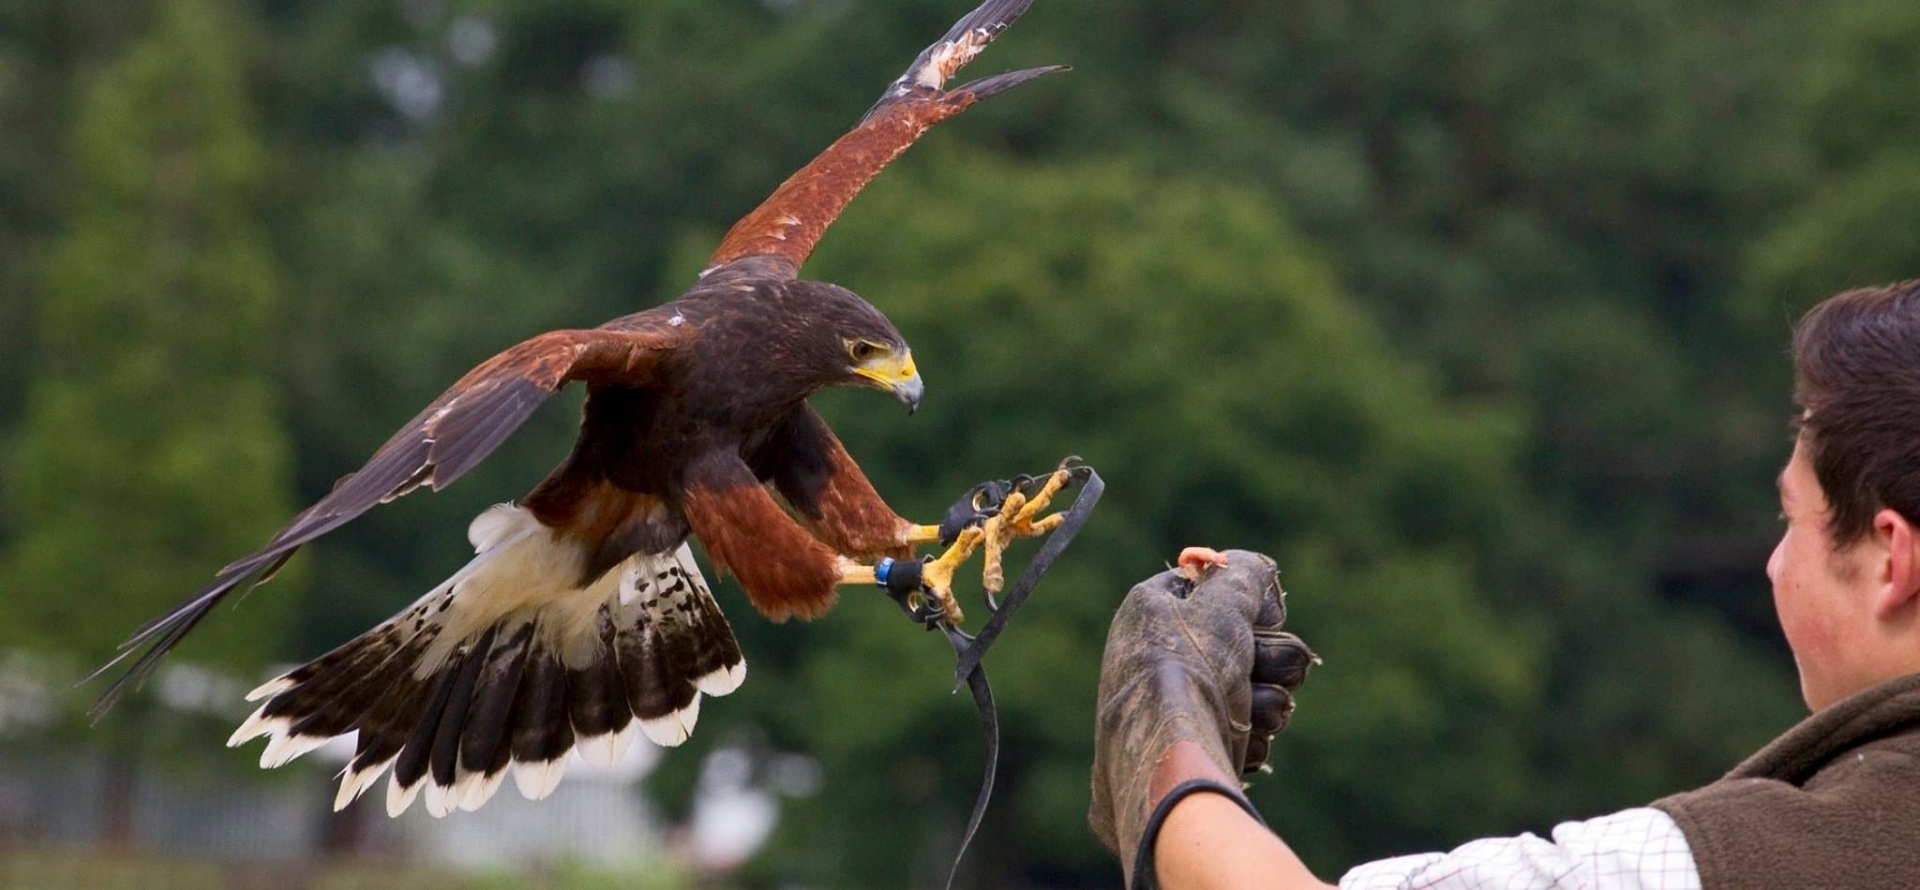 Bedfordshire Bird Of Prey Experience - Half Day-5